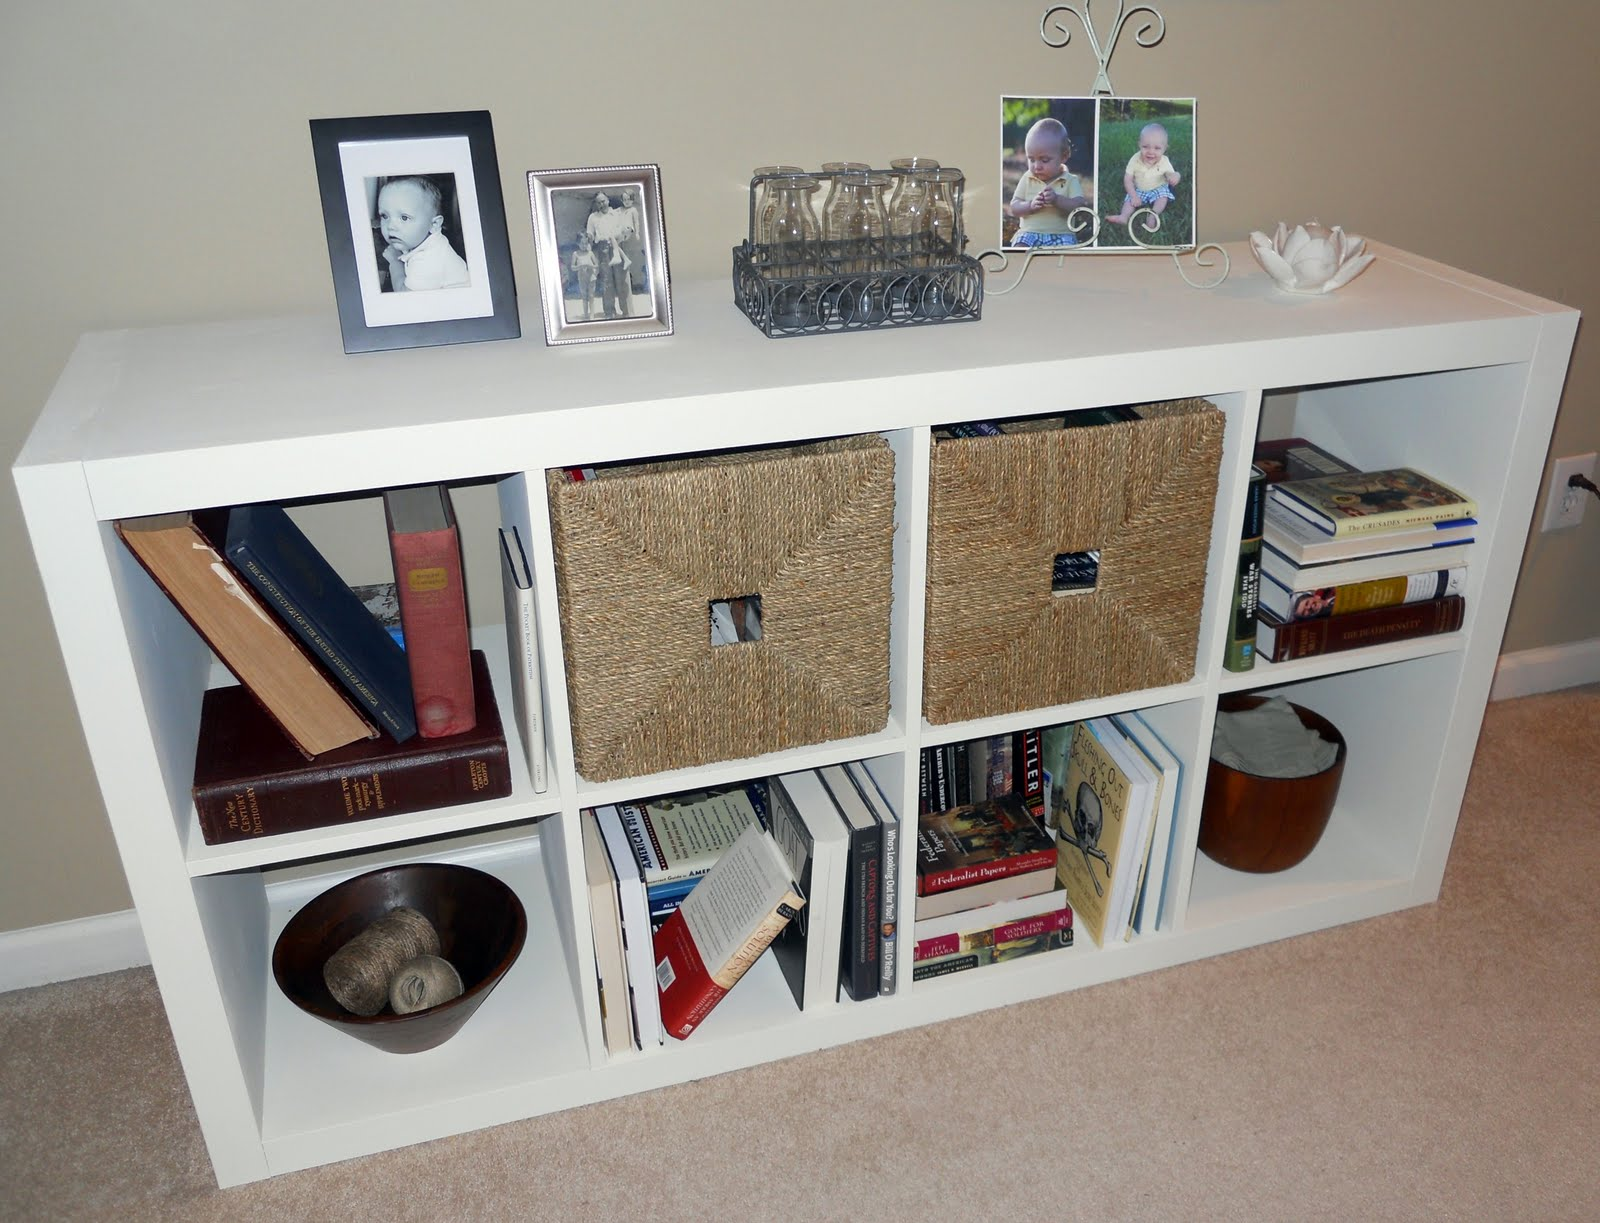 Ikea Expedit Chalk Paint 1060 Bliss A Little Bookshelf And A Chalk Paint Review